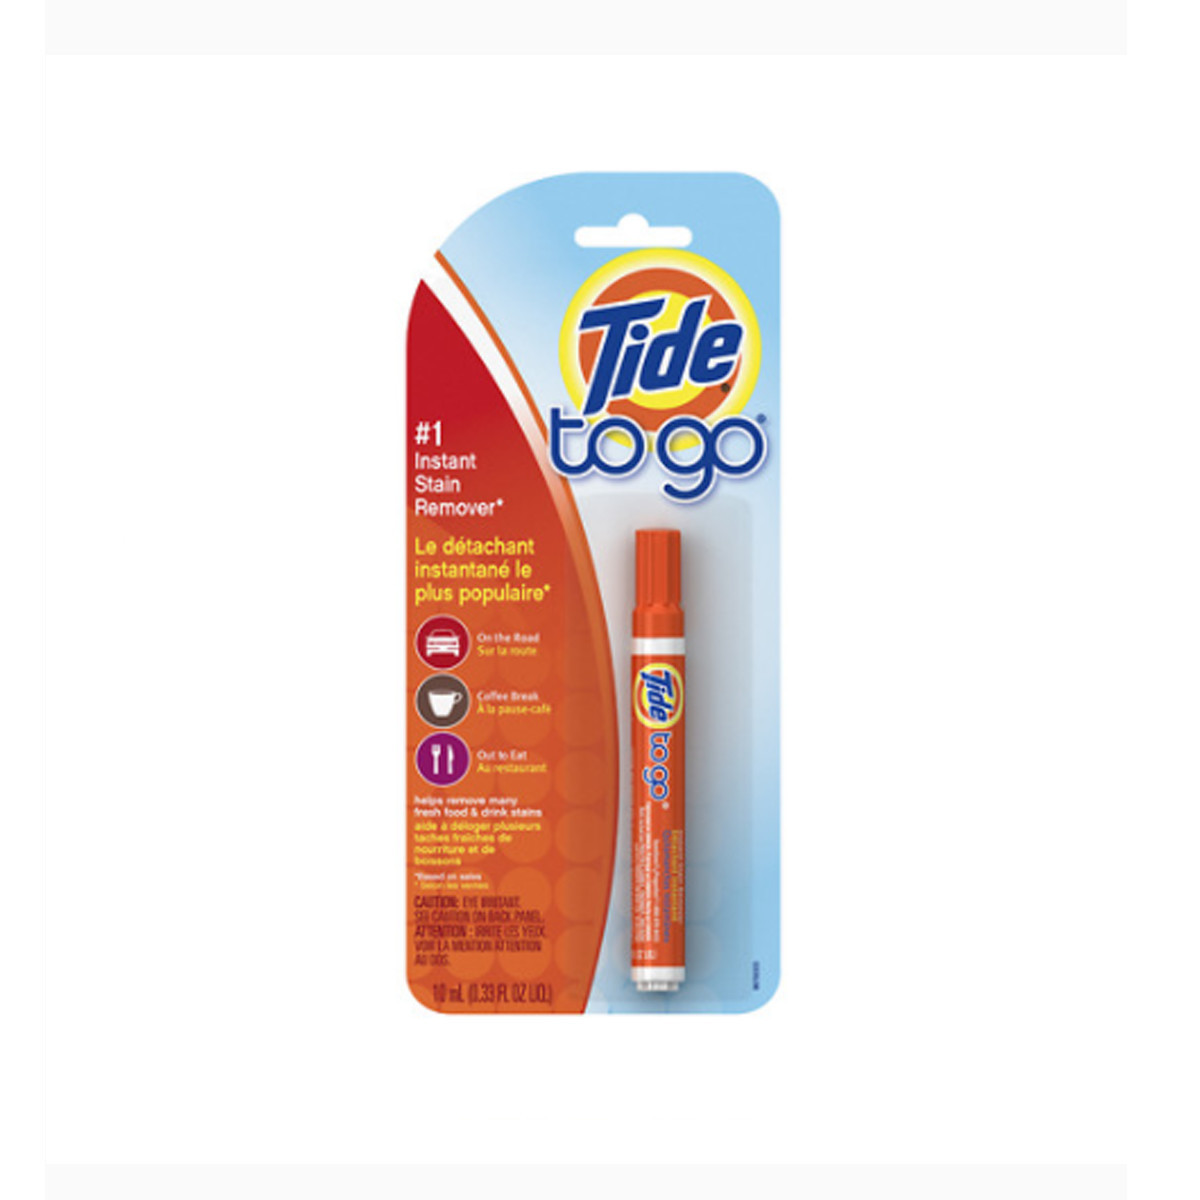 Tide to-go stain pen photo